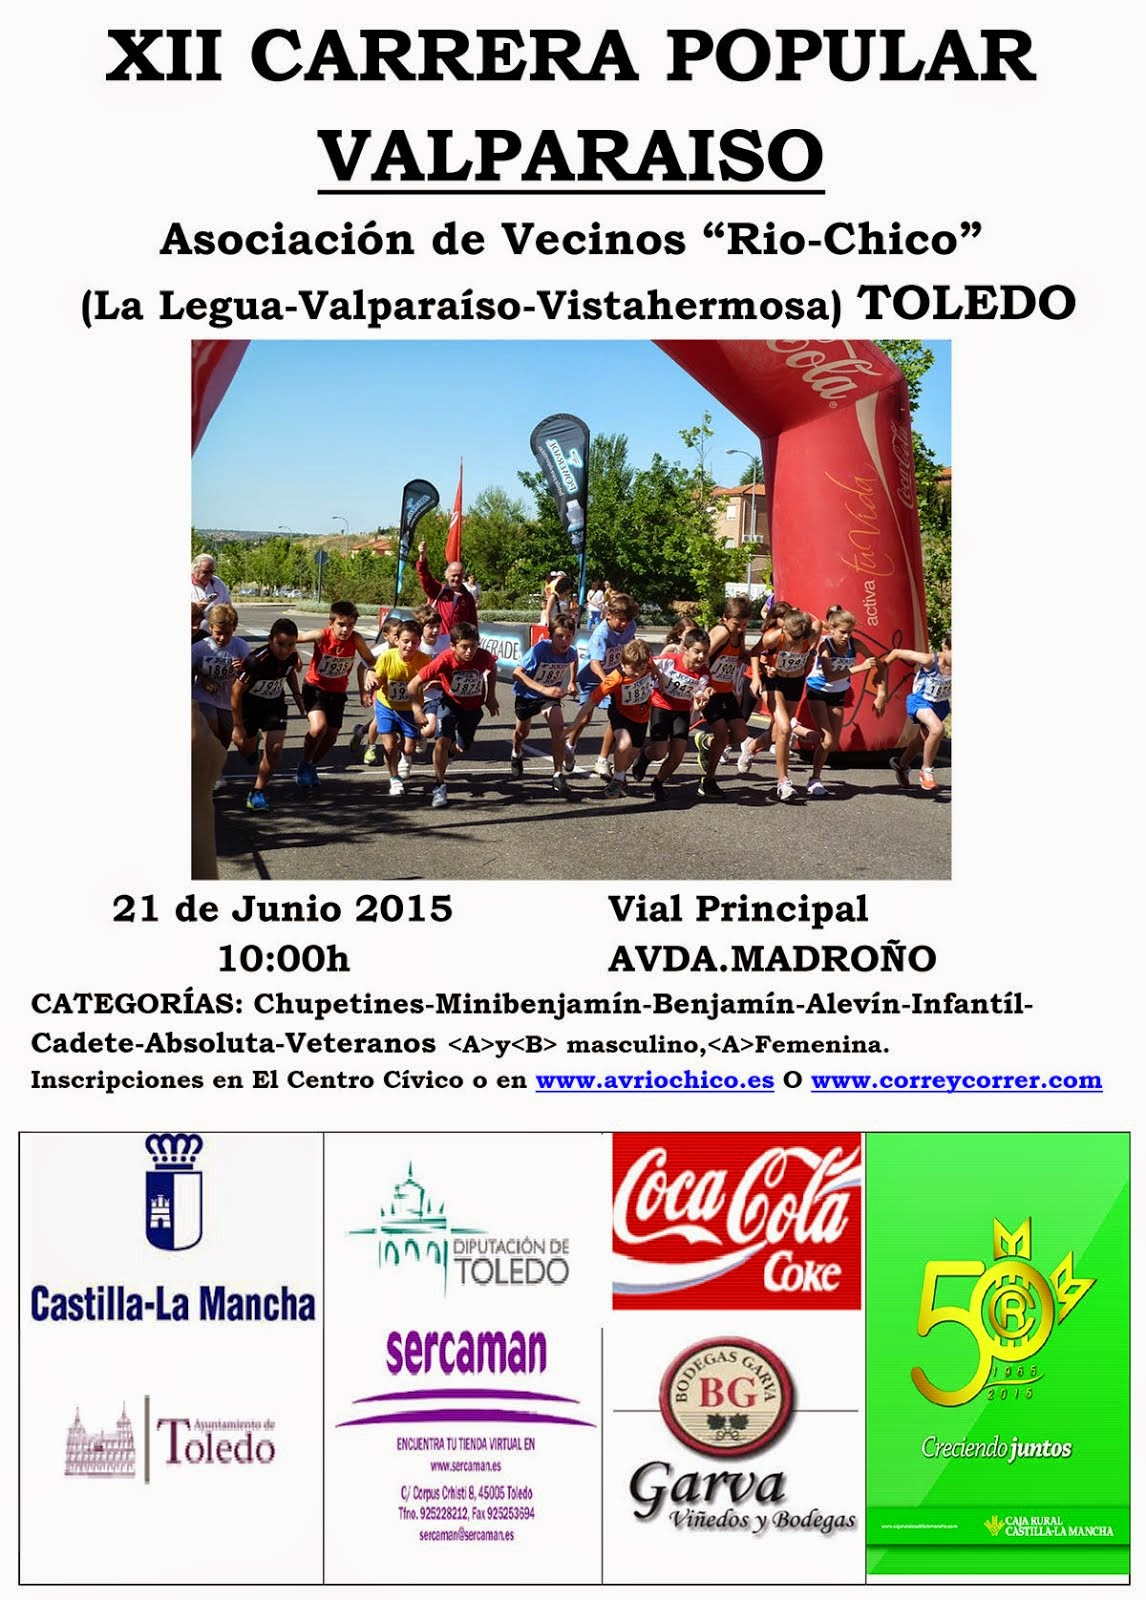 XII Carrera Popular de Valparaíso en Toledo